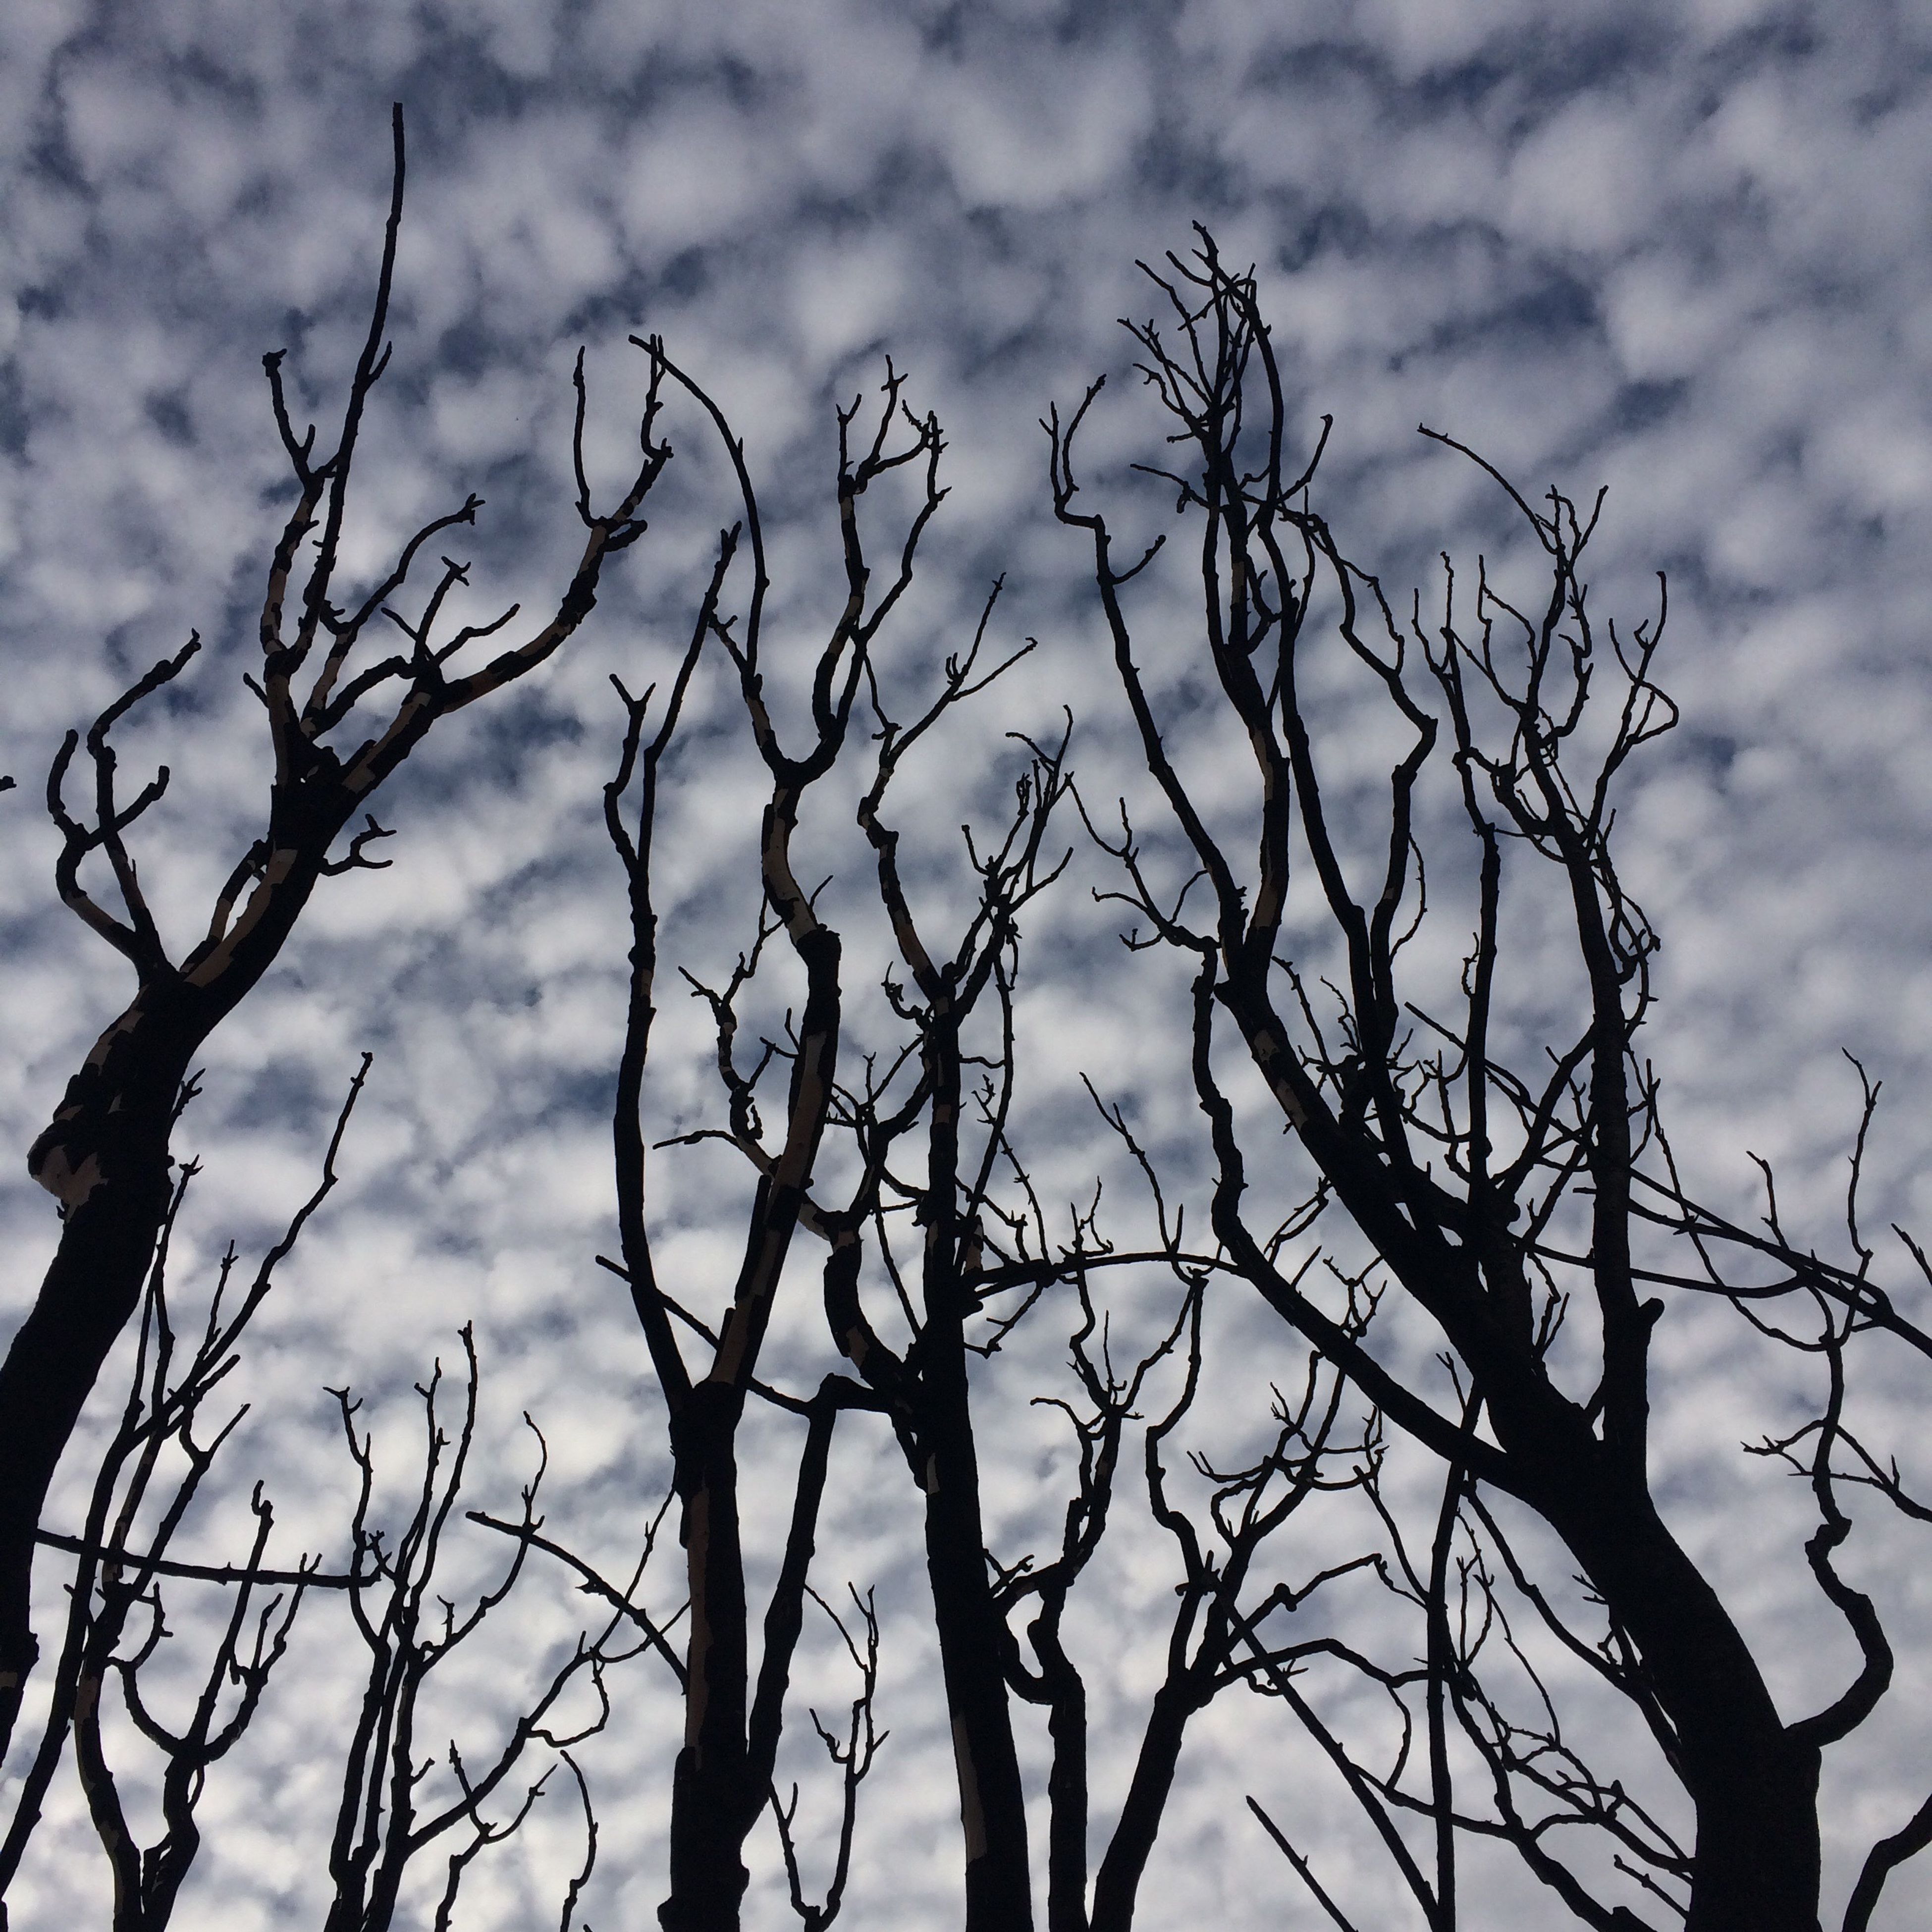 sky, cloud - sky, low angle view, nature, no people, bare tree, outdoors, day, beauty in nature, tree, close-up